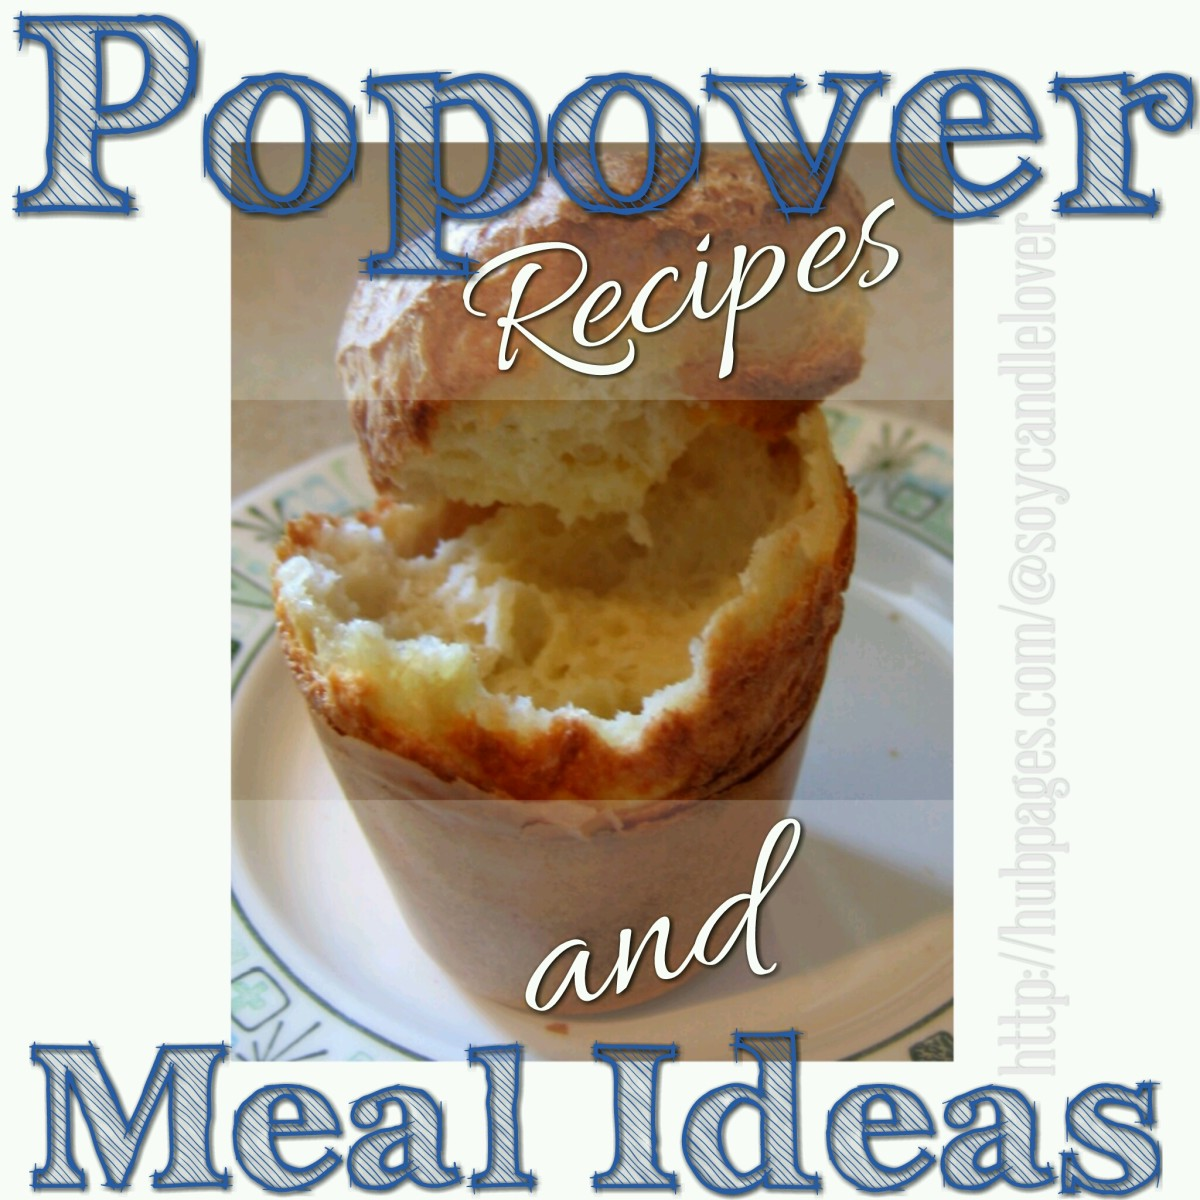 Popovers Recipe and Meal Ideas